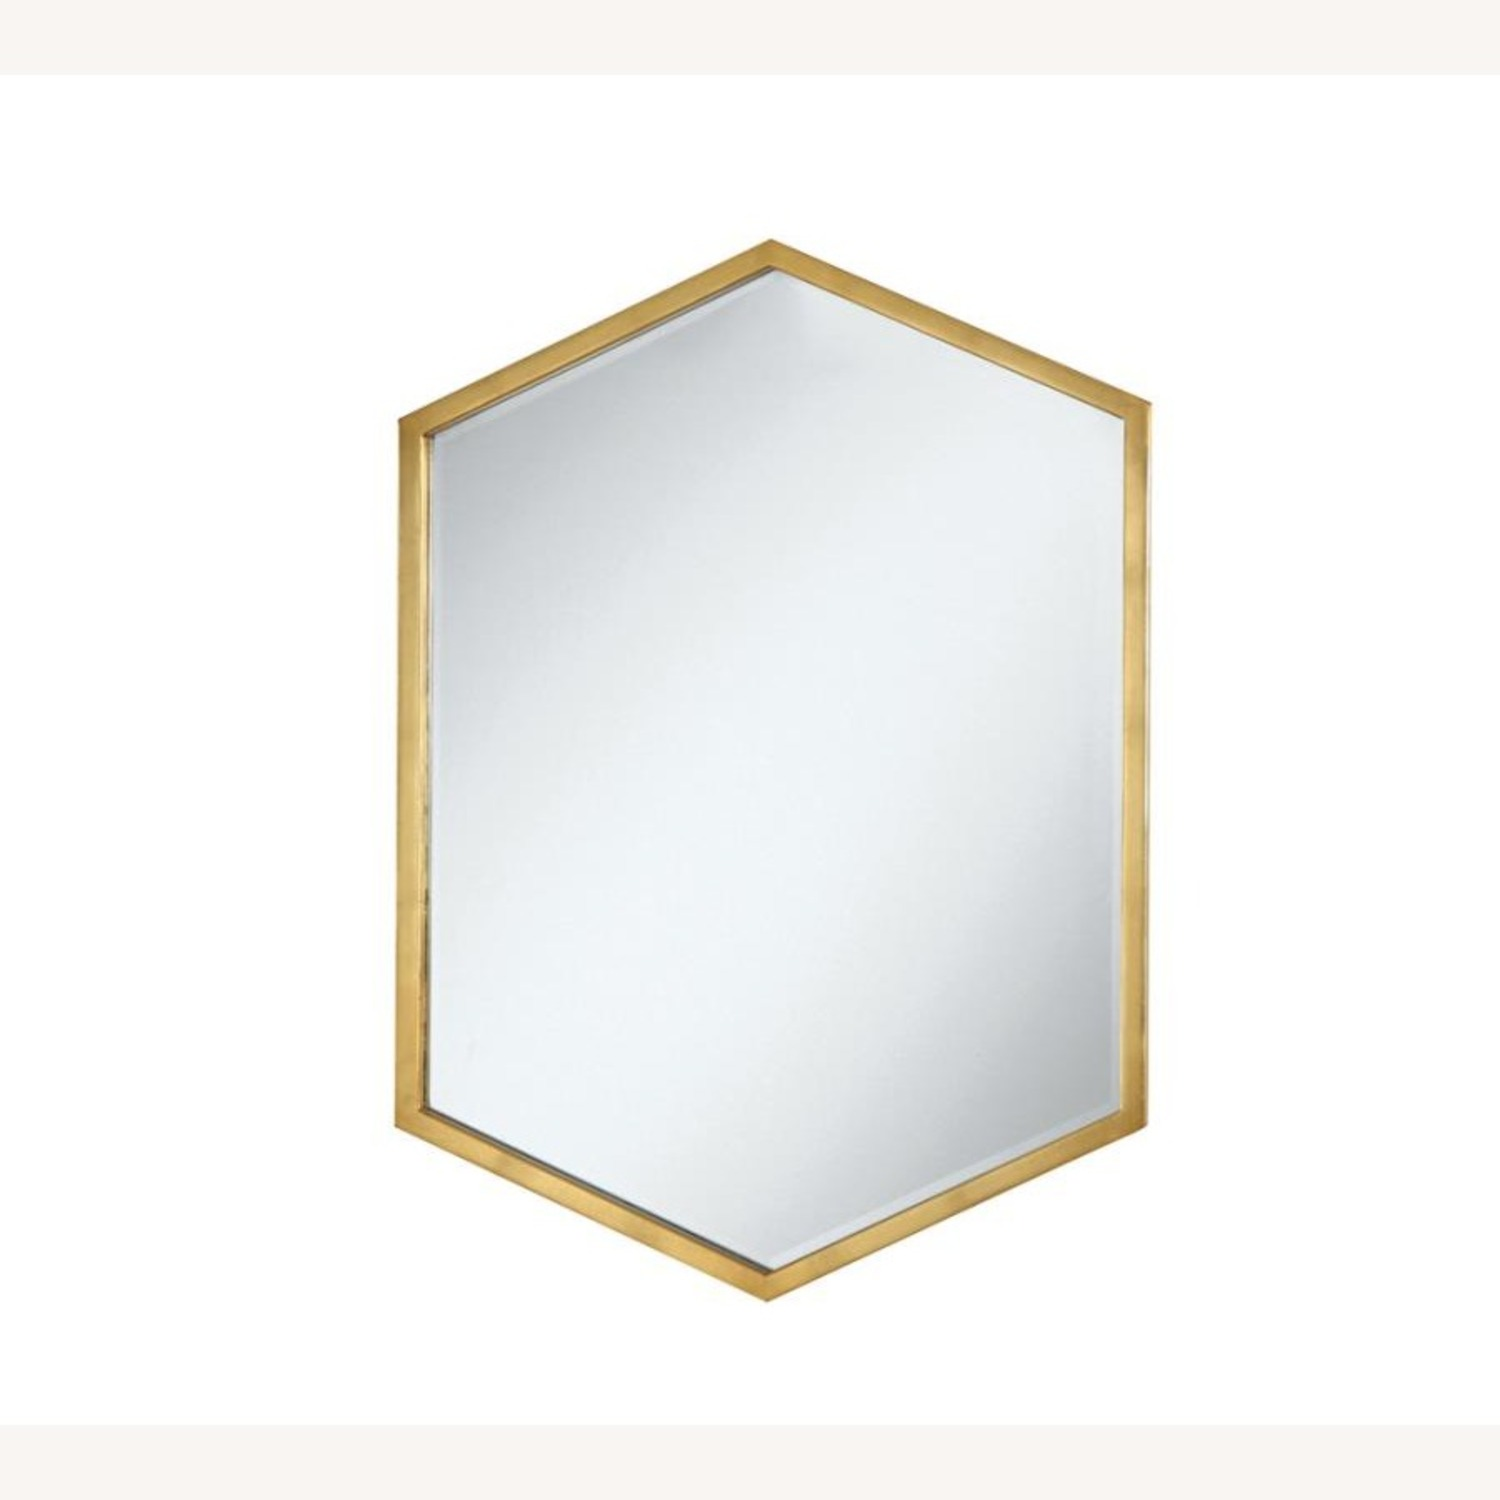 Mirror In Matte Gold Hexagon-Shaped Frame Finish - image-1